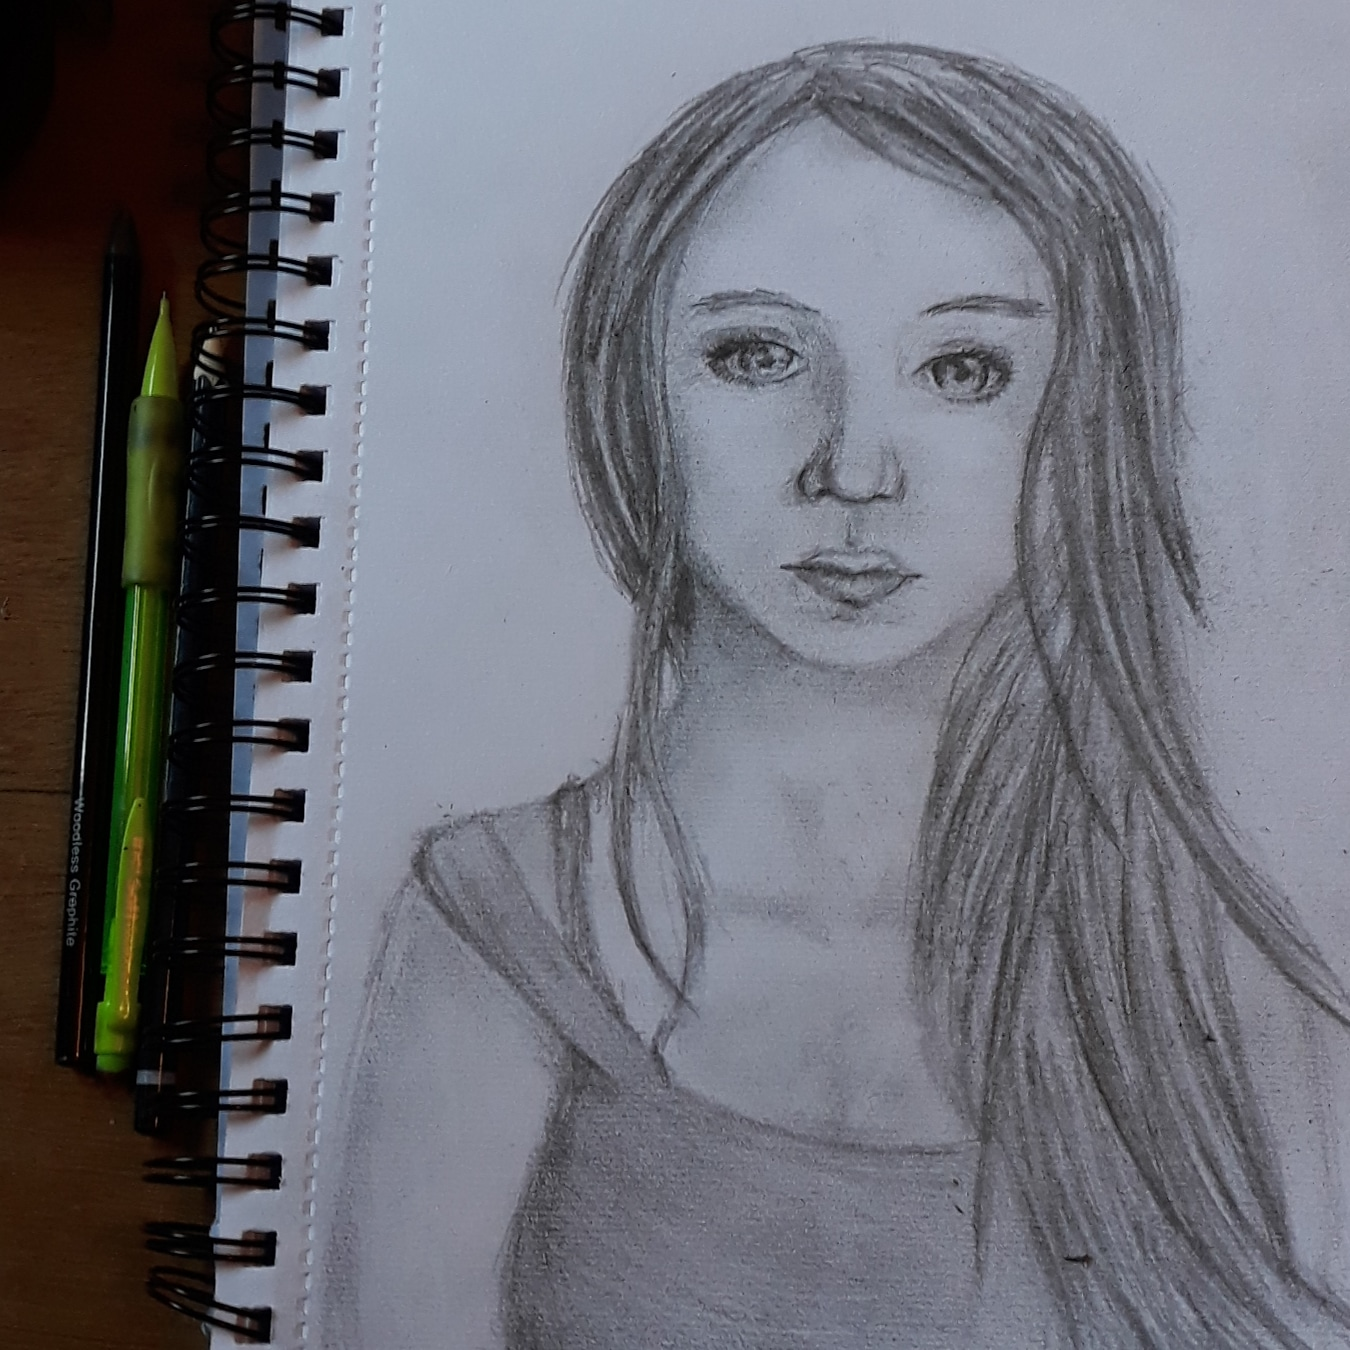 trying to draw a semi realistic face attempt 4 by hramunro on newgrounds